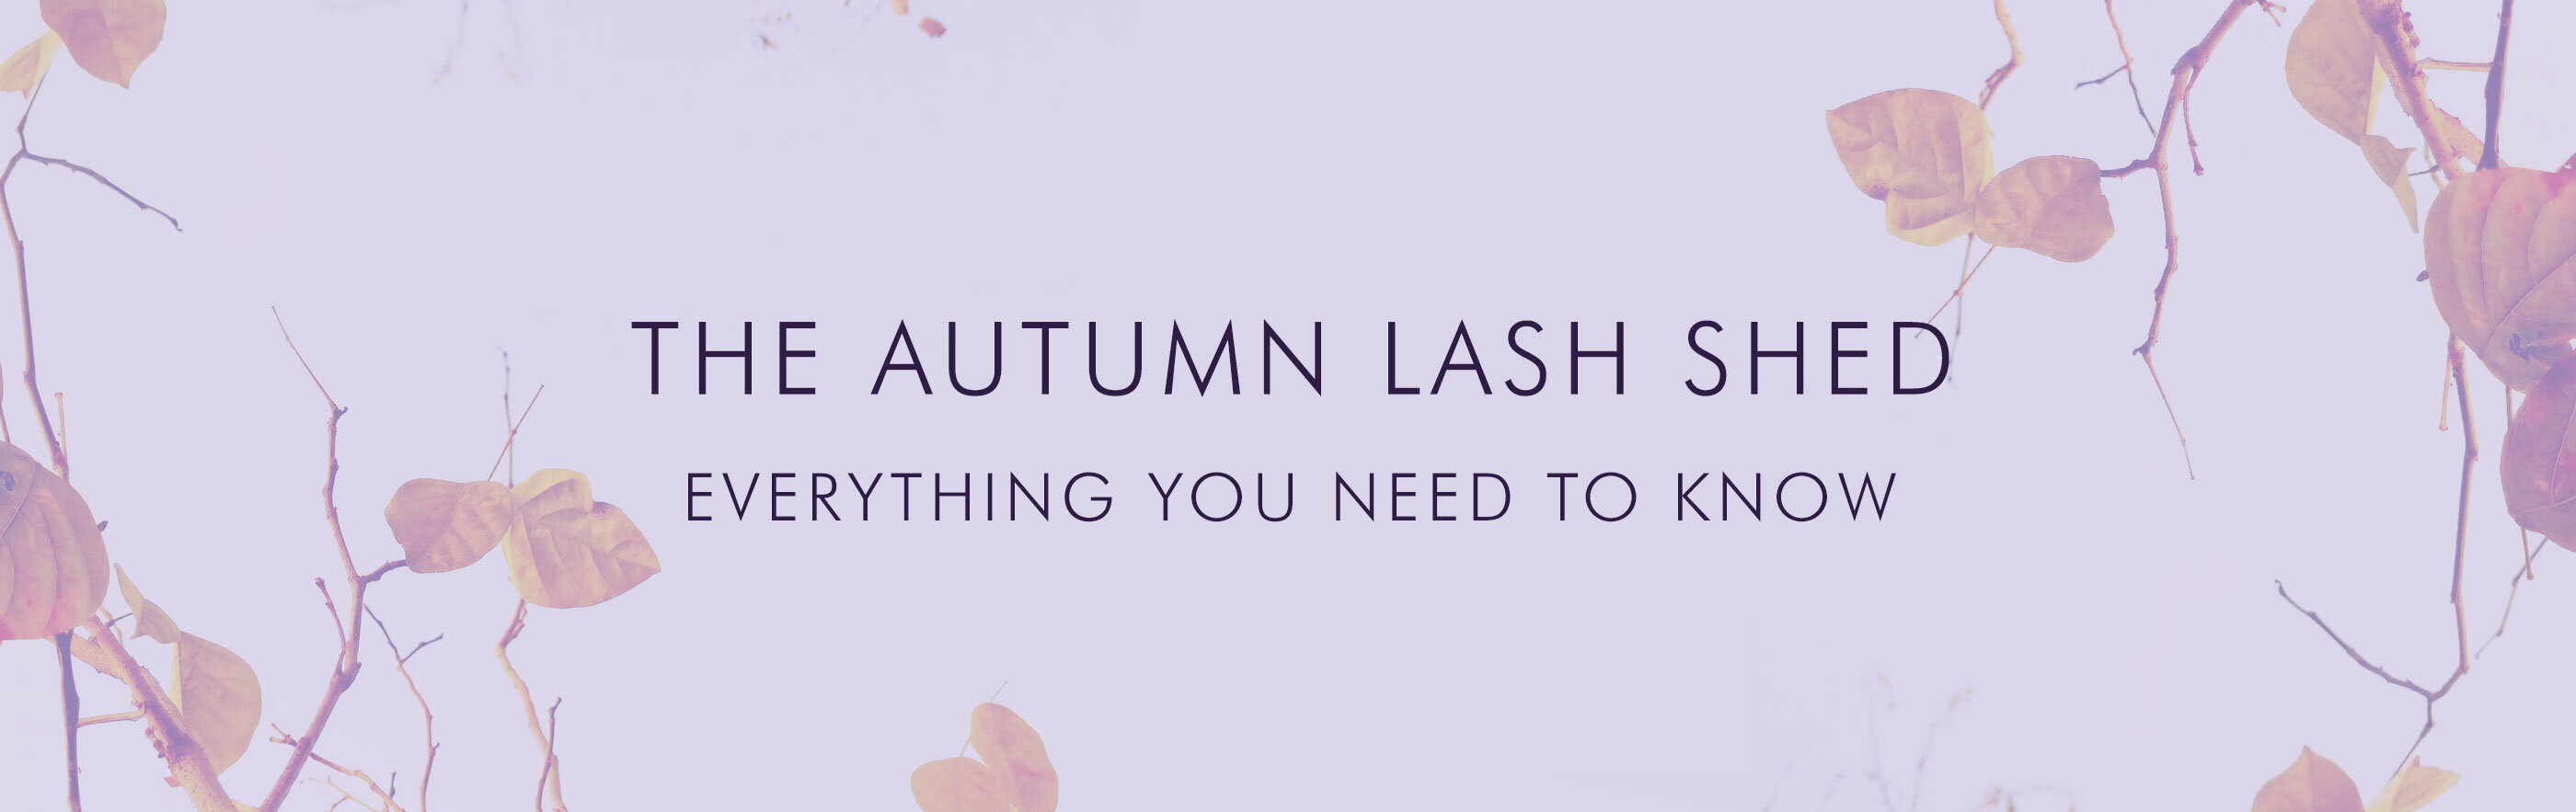 The Autumn Lash Shed: Everything You Need To Know